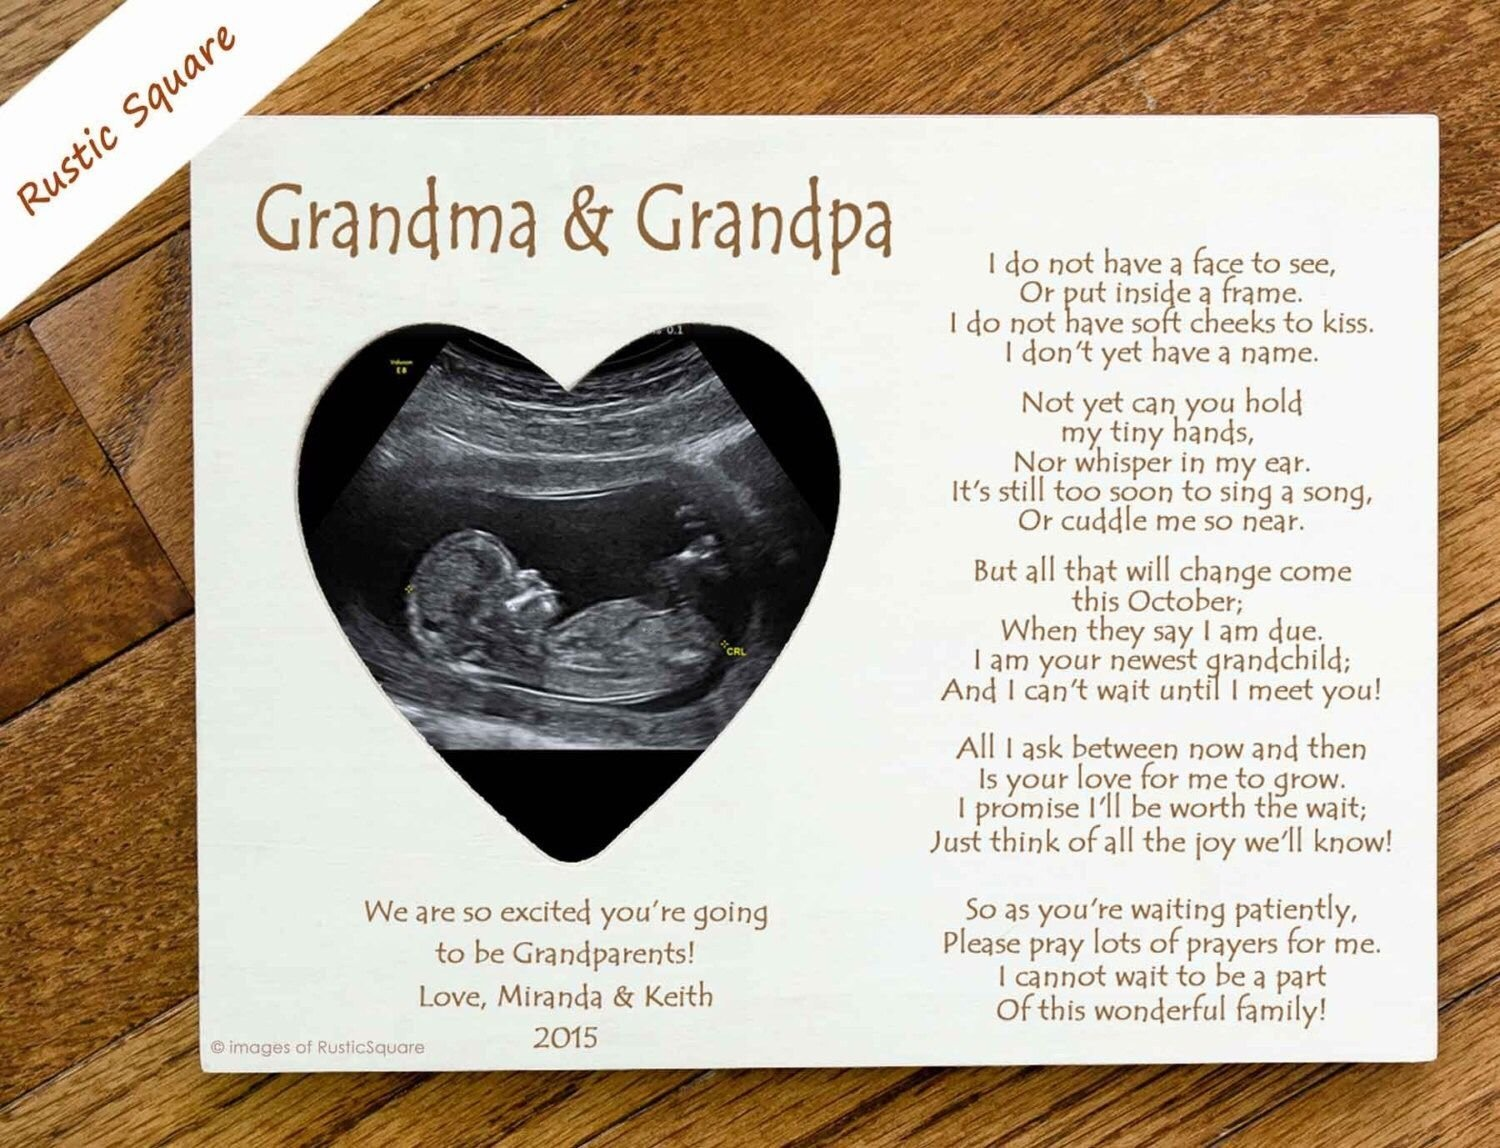 10 Fantastic Baby Announcement Ideas For Grandparents letter with a gift for grandparents pregnancy announced babies 2020